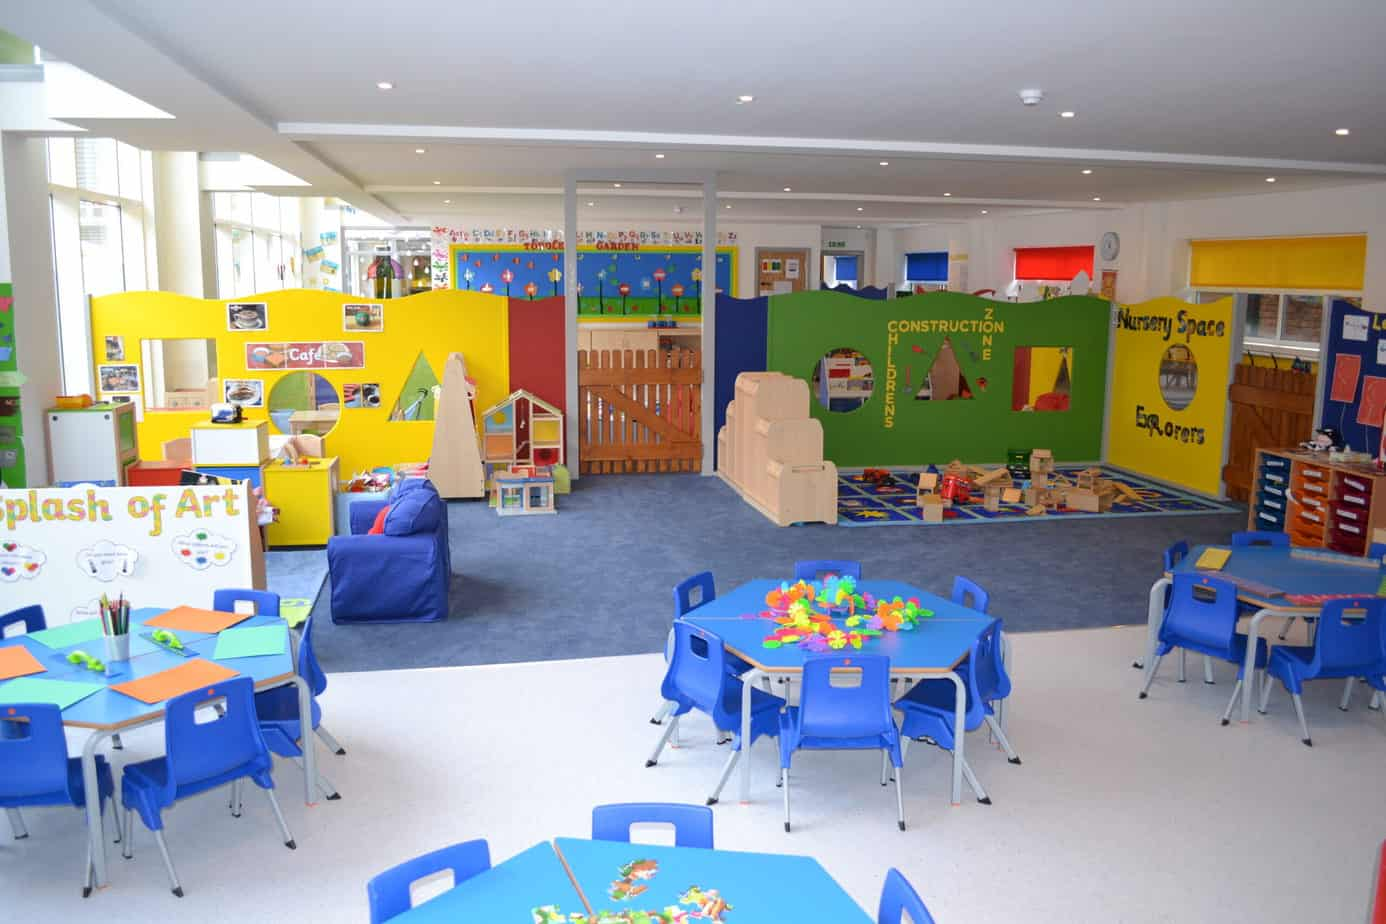 day nursery nursery room